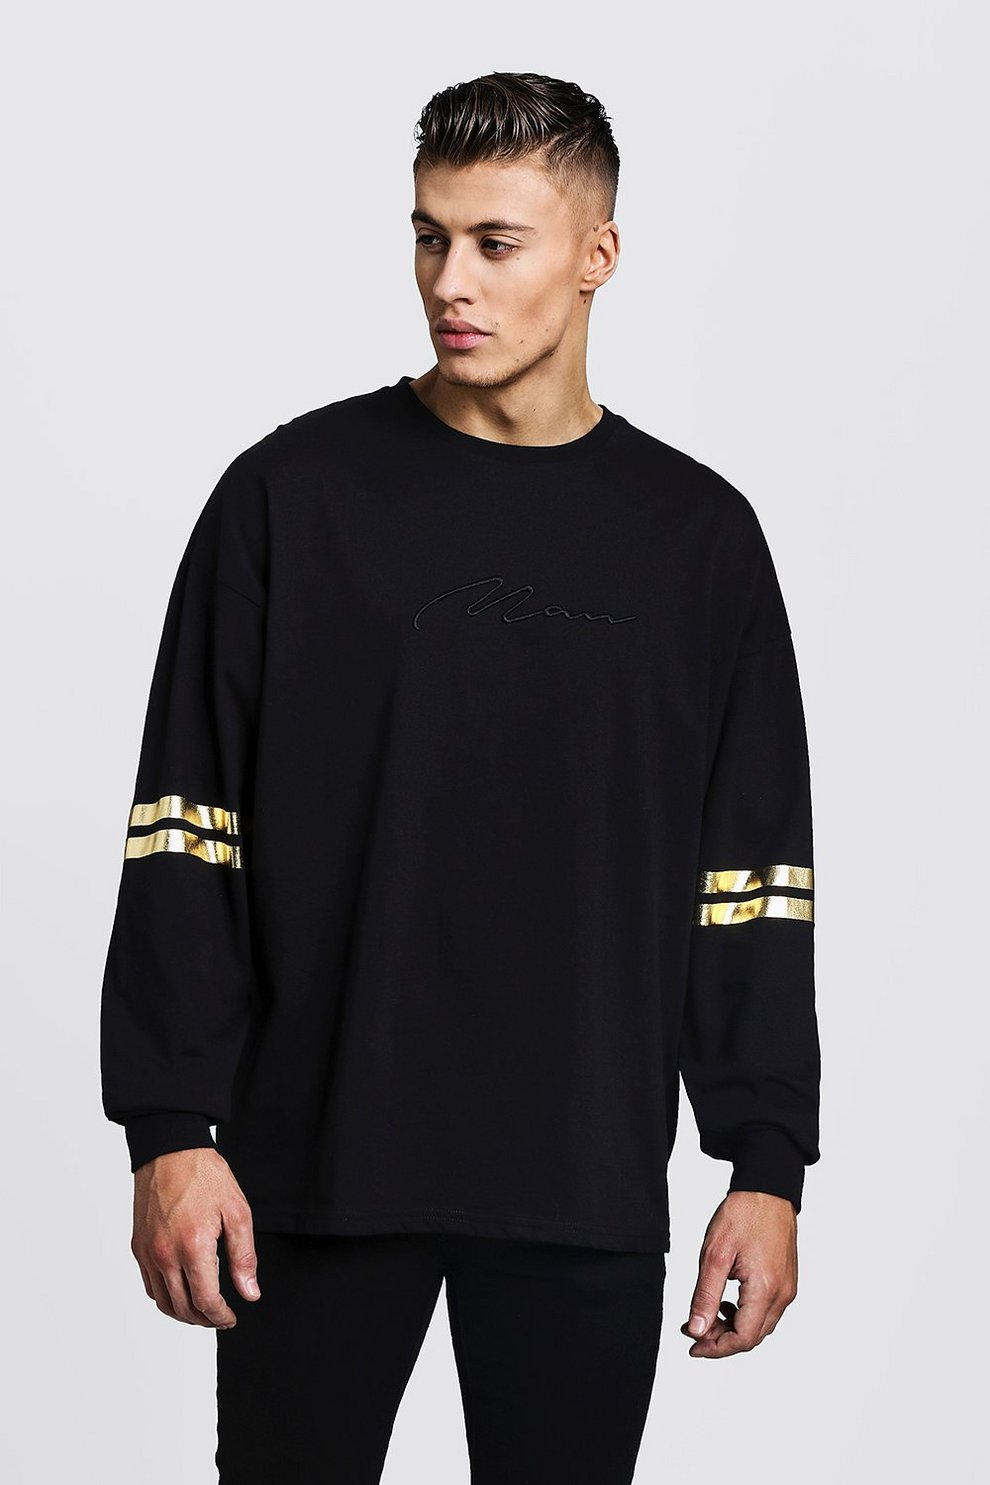 09b83e8c3 Mens Black Gold MAN Oversized Long Sleeve T-Shirt With Foil. Hover to zoom